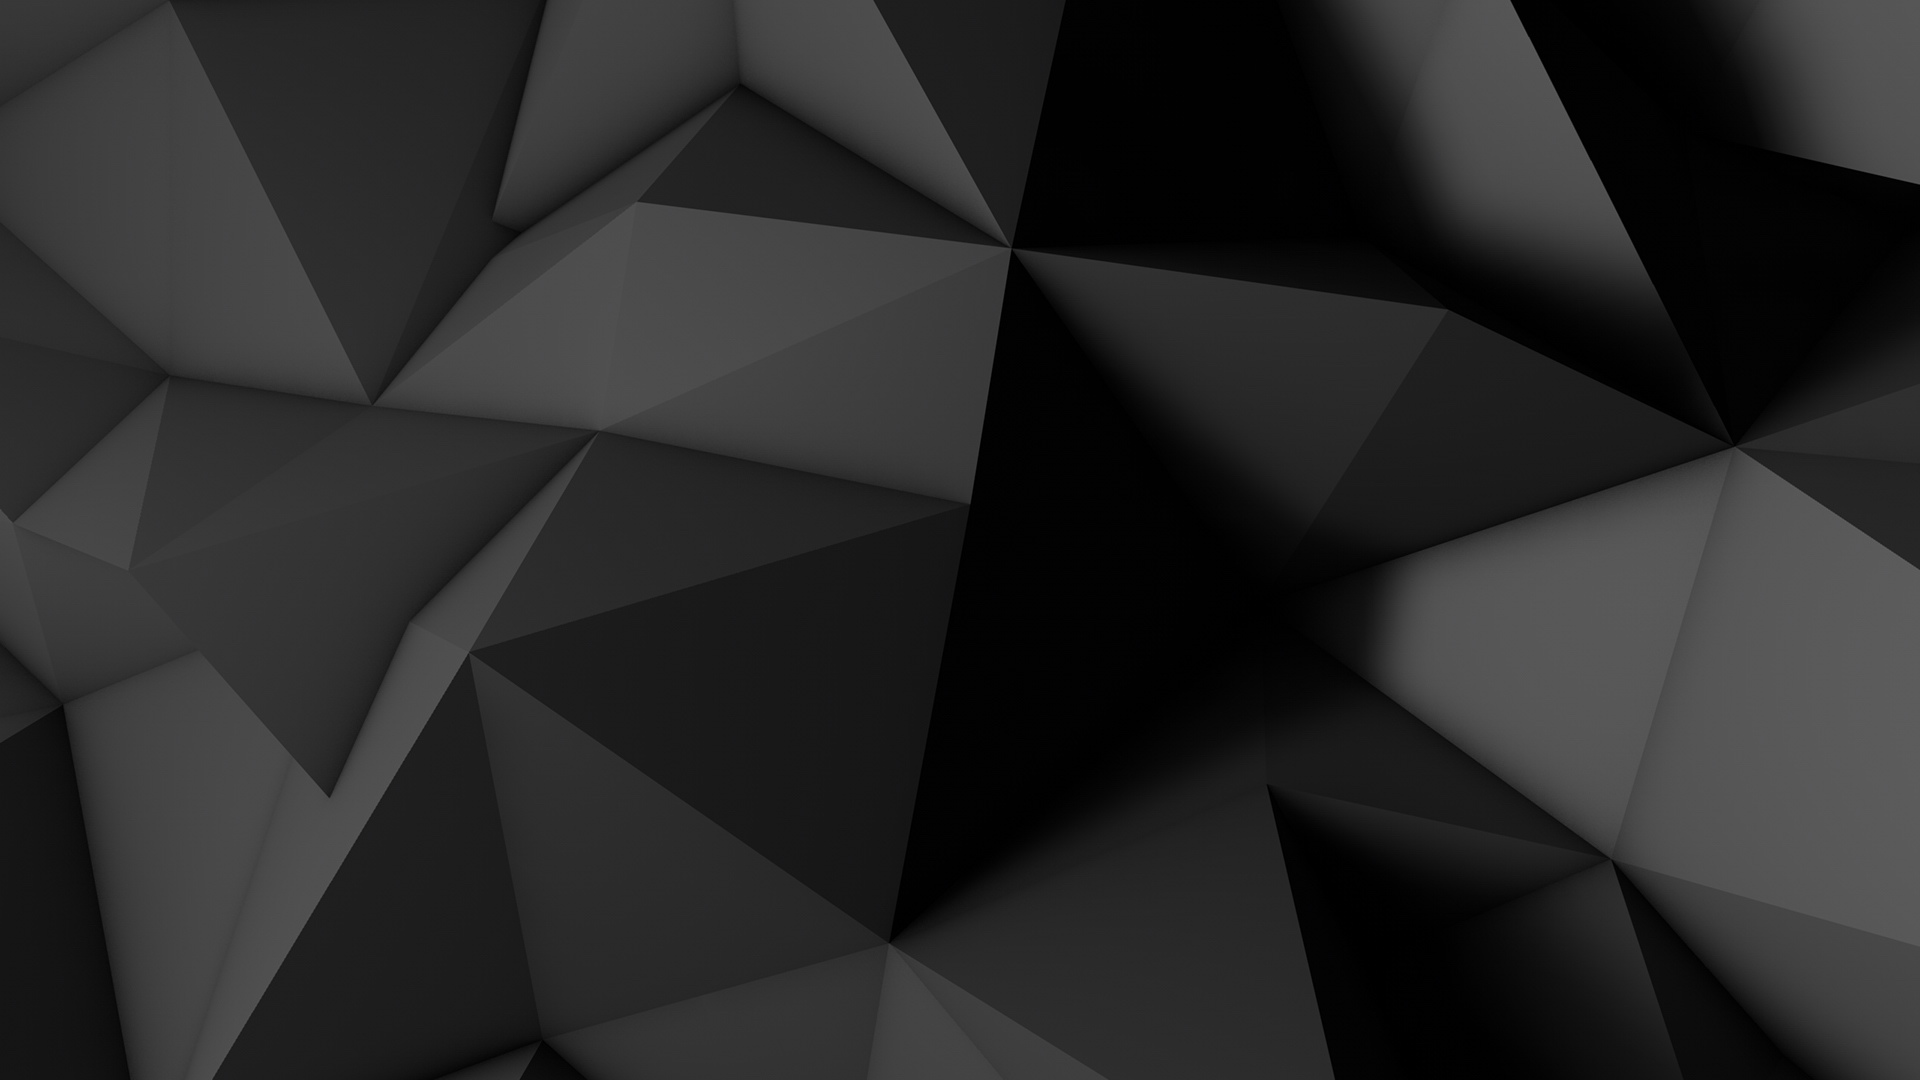 black desktop wallpaper hd,black,black and white,monochrome,triangle,architecture